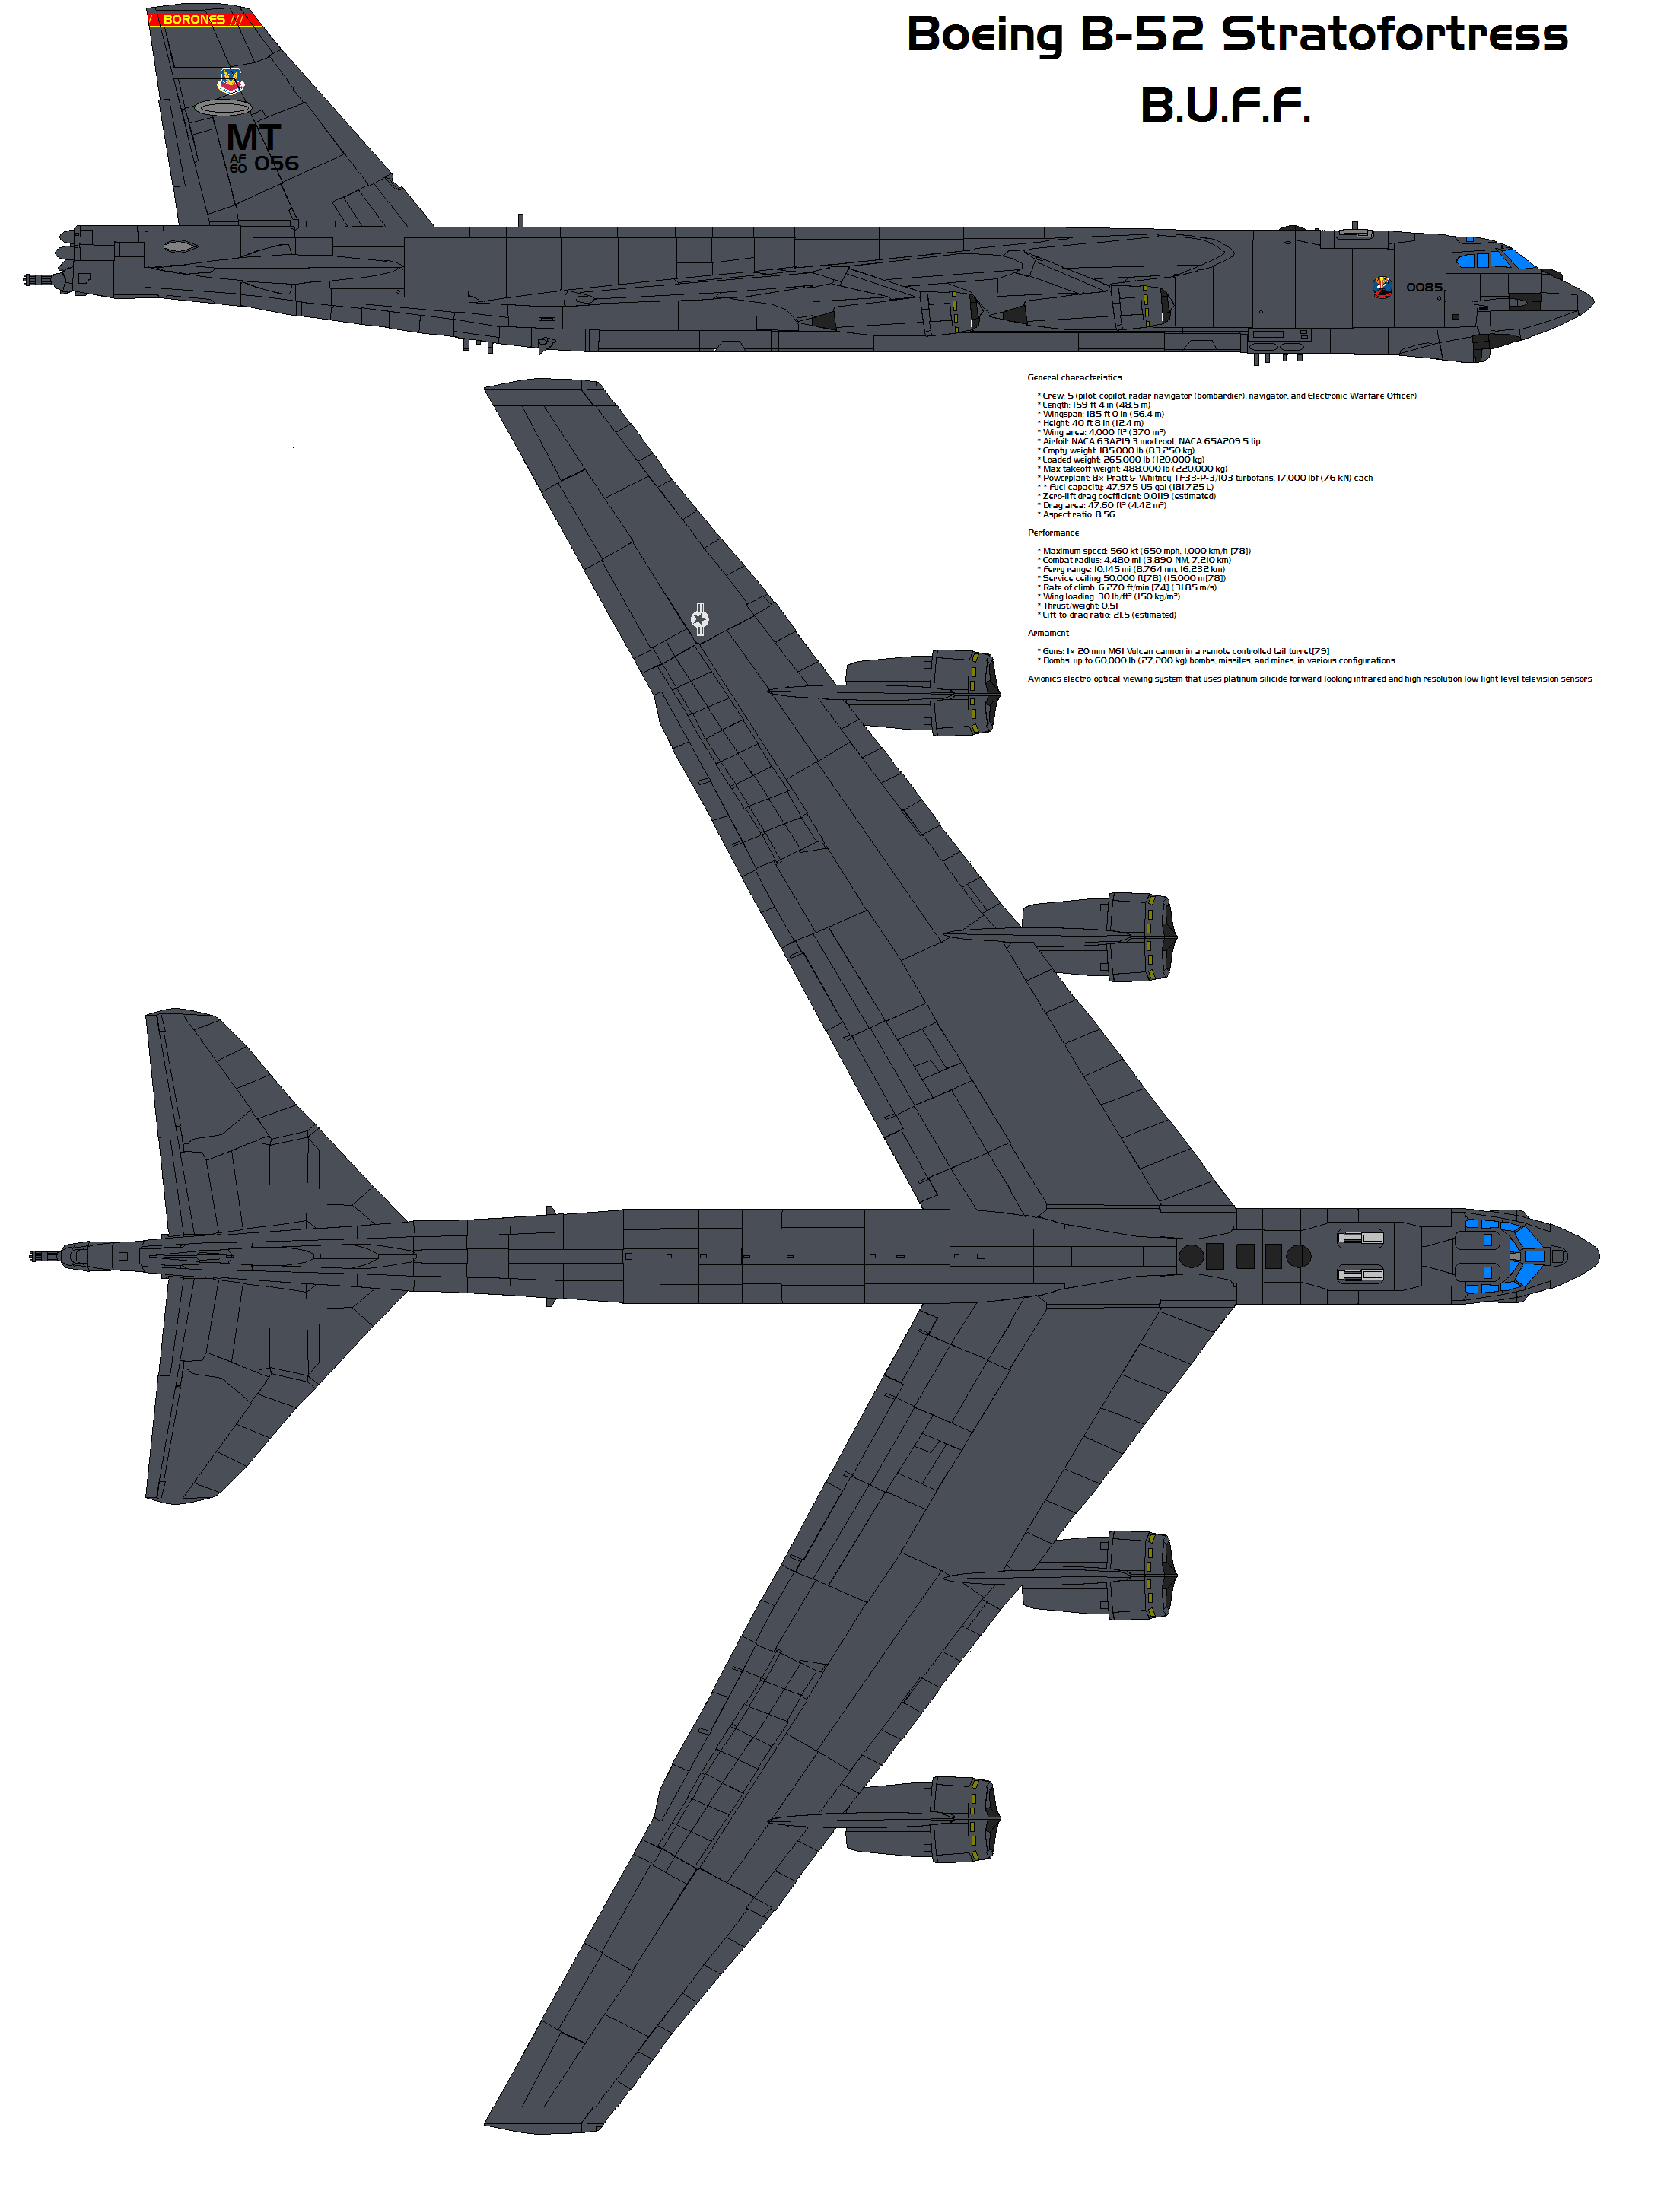 B-52, bomber (Boeing B-52): description, specifications, weapons 92